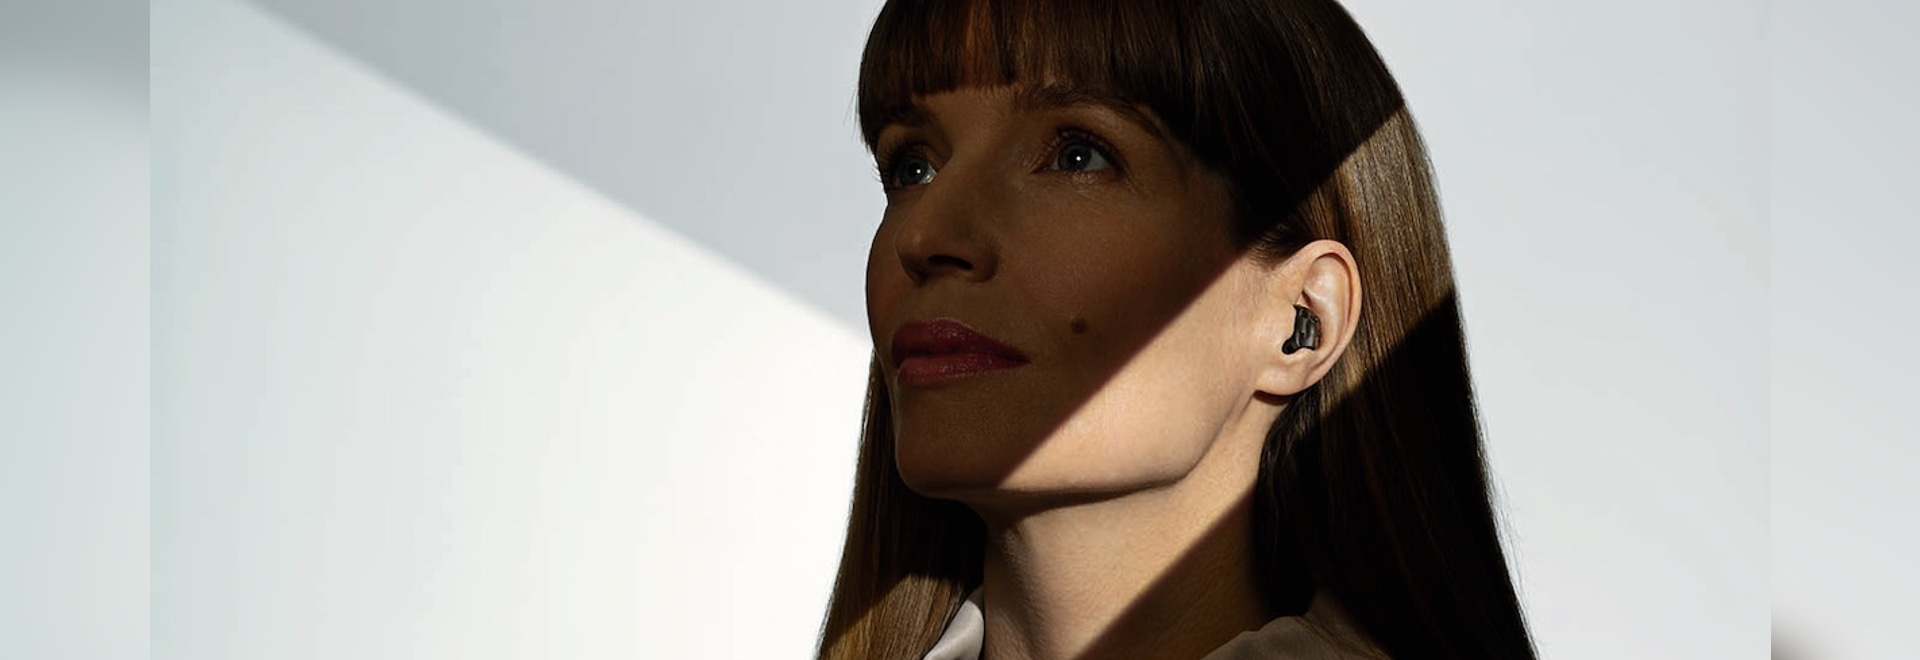 Phonak unveils Virto Black, a fully-connected, earbud-shaped hearing aid